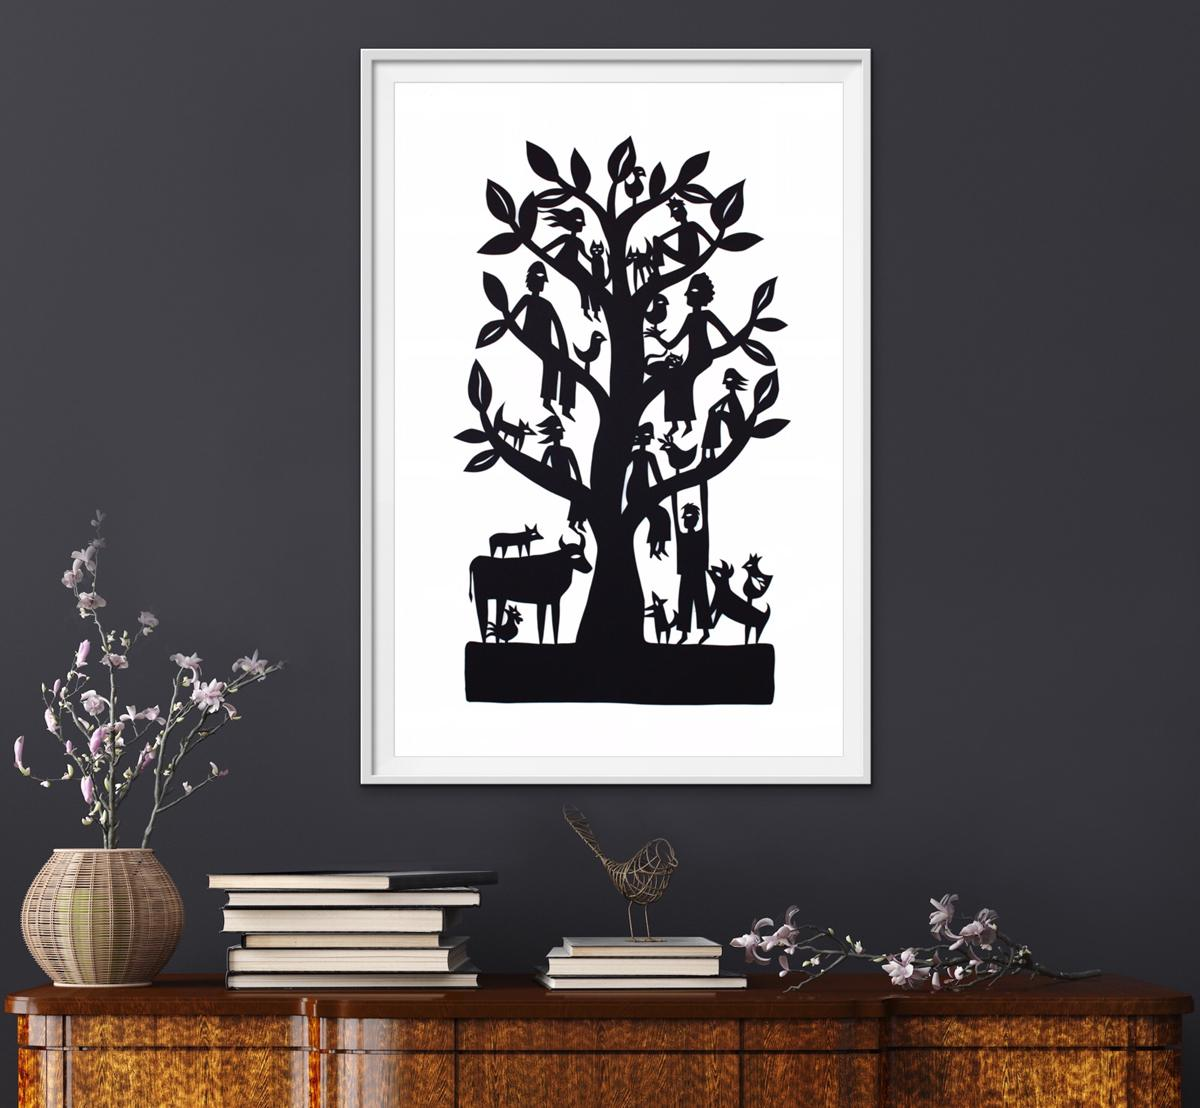 A framed black family tree papercut featuring lots of farm animals